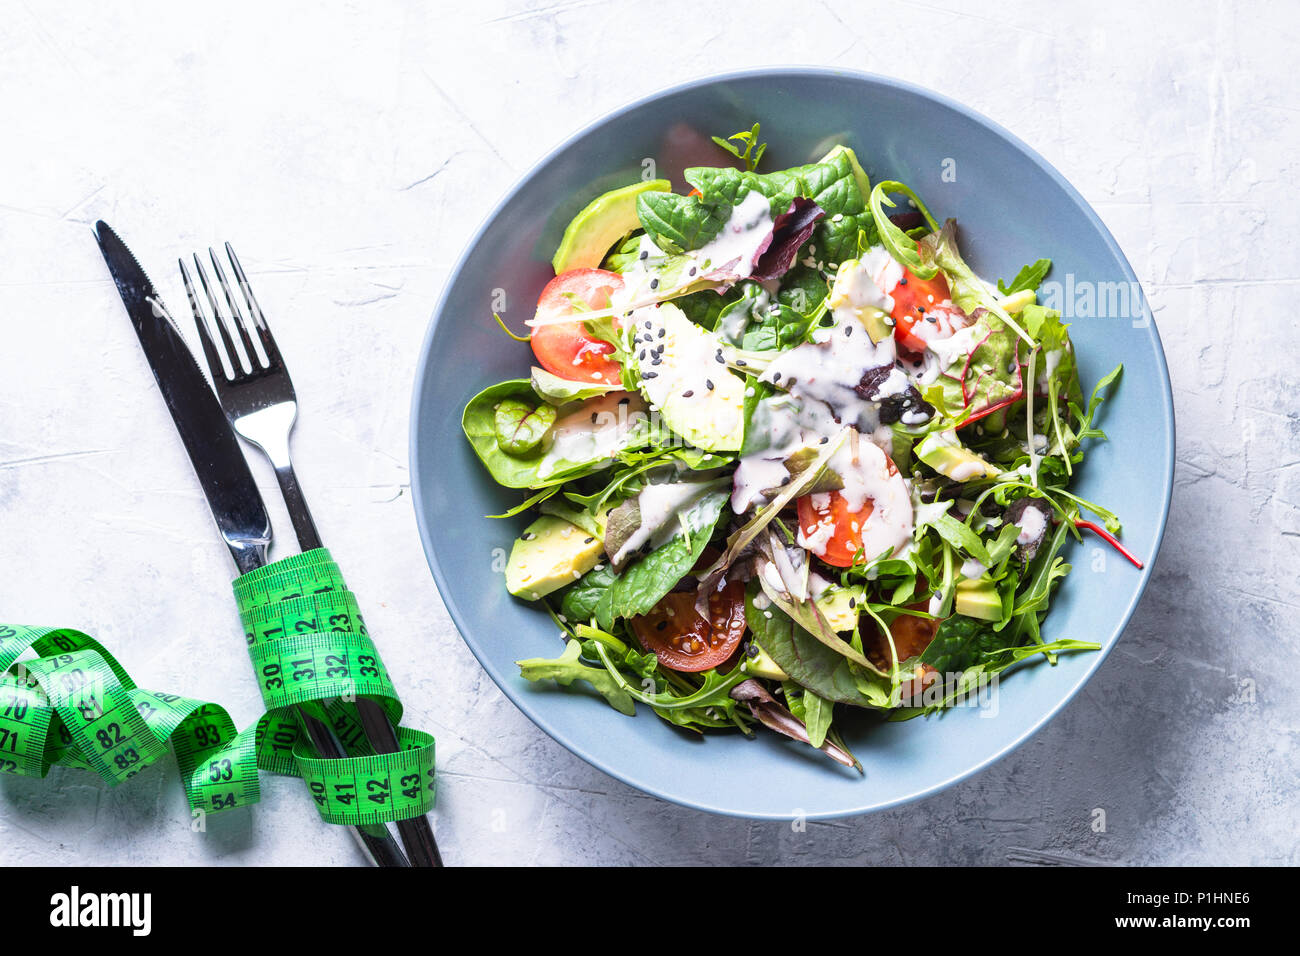 Fresh green salad with mixed green leaves, tomatoes and avocado with yogurt sauce and sesame. Low-calorie and weight less food. - Stock Image